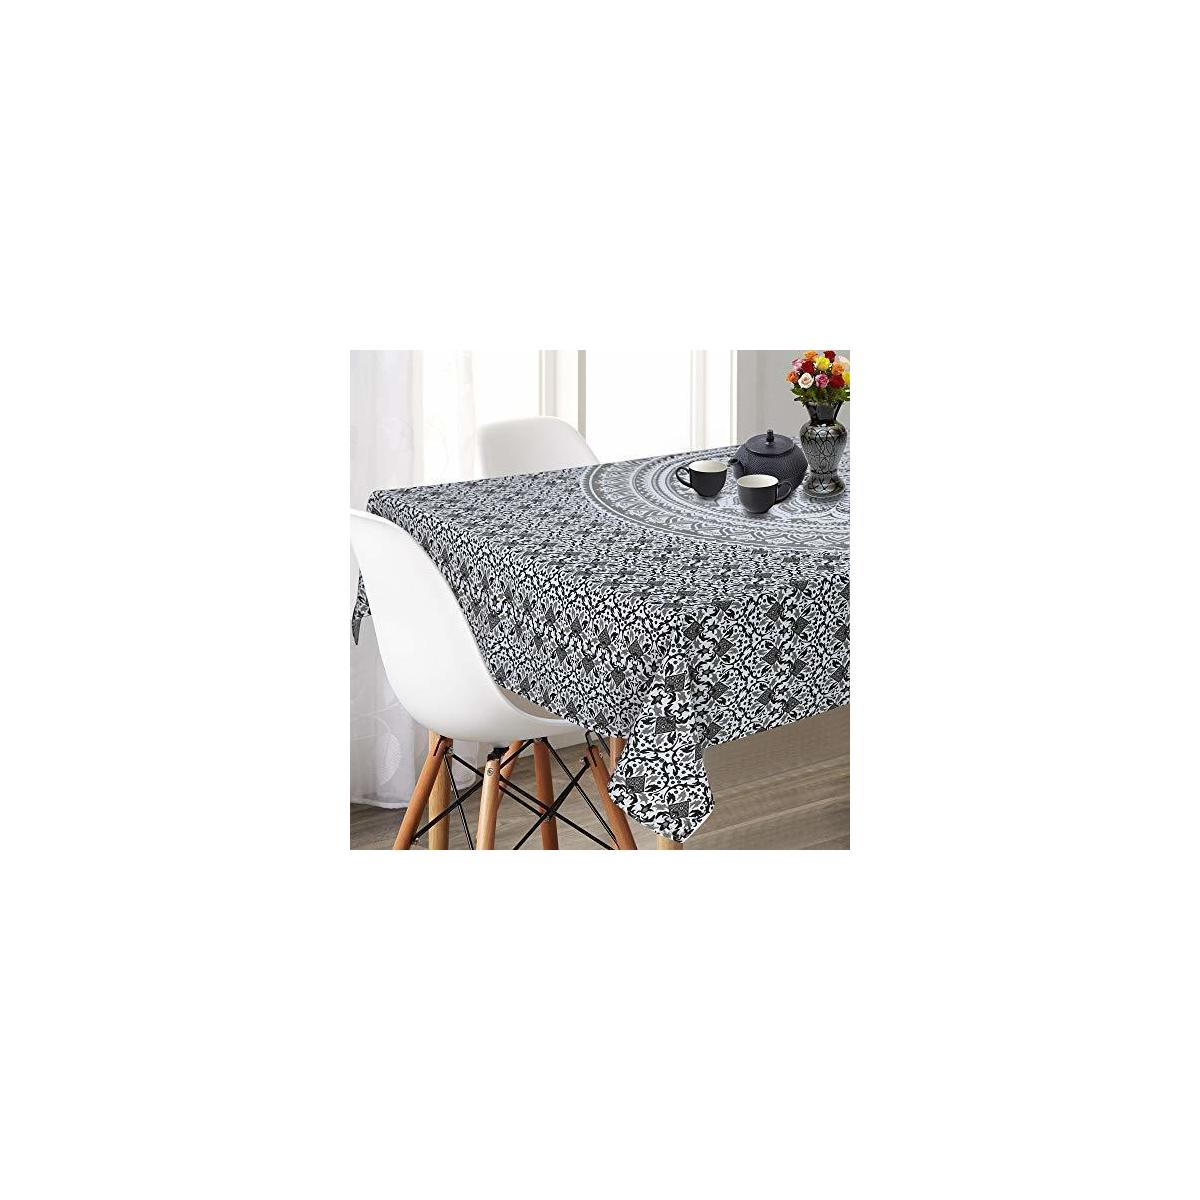 SHIVANSH CREATIONS Rectangle Table Cloth Cotton Linen Dust Proof Oblong Table Cover for Kitchen Dinning Tabletop Decoration (Grey Ombre)